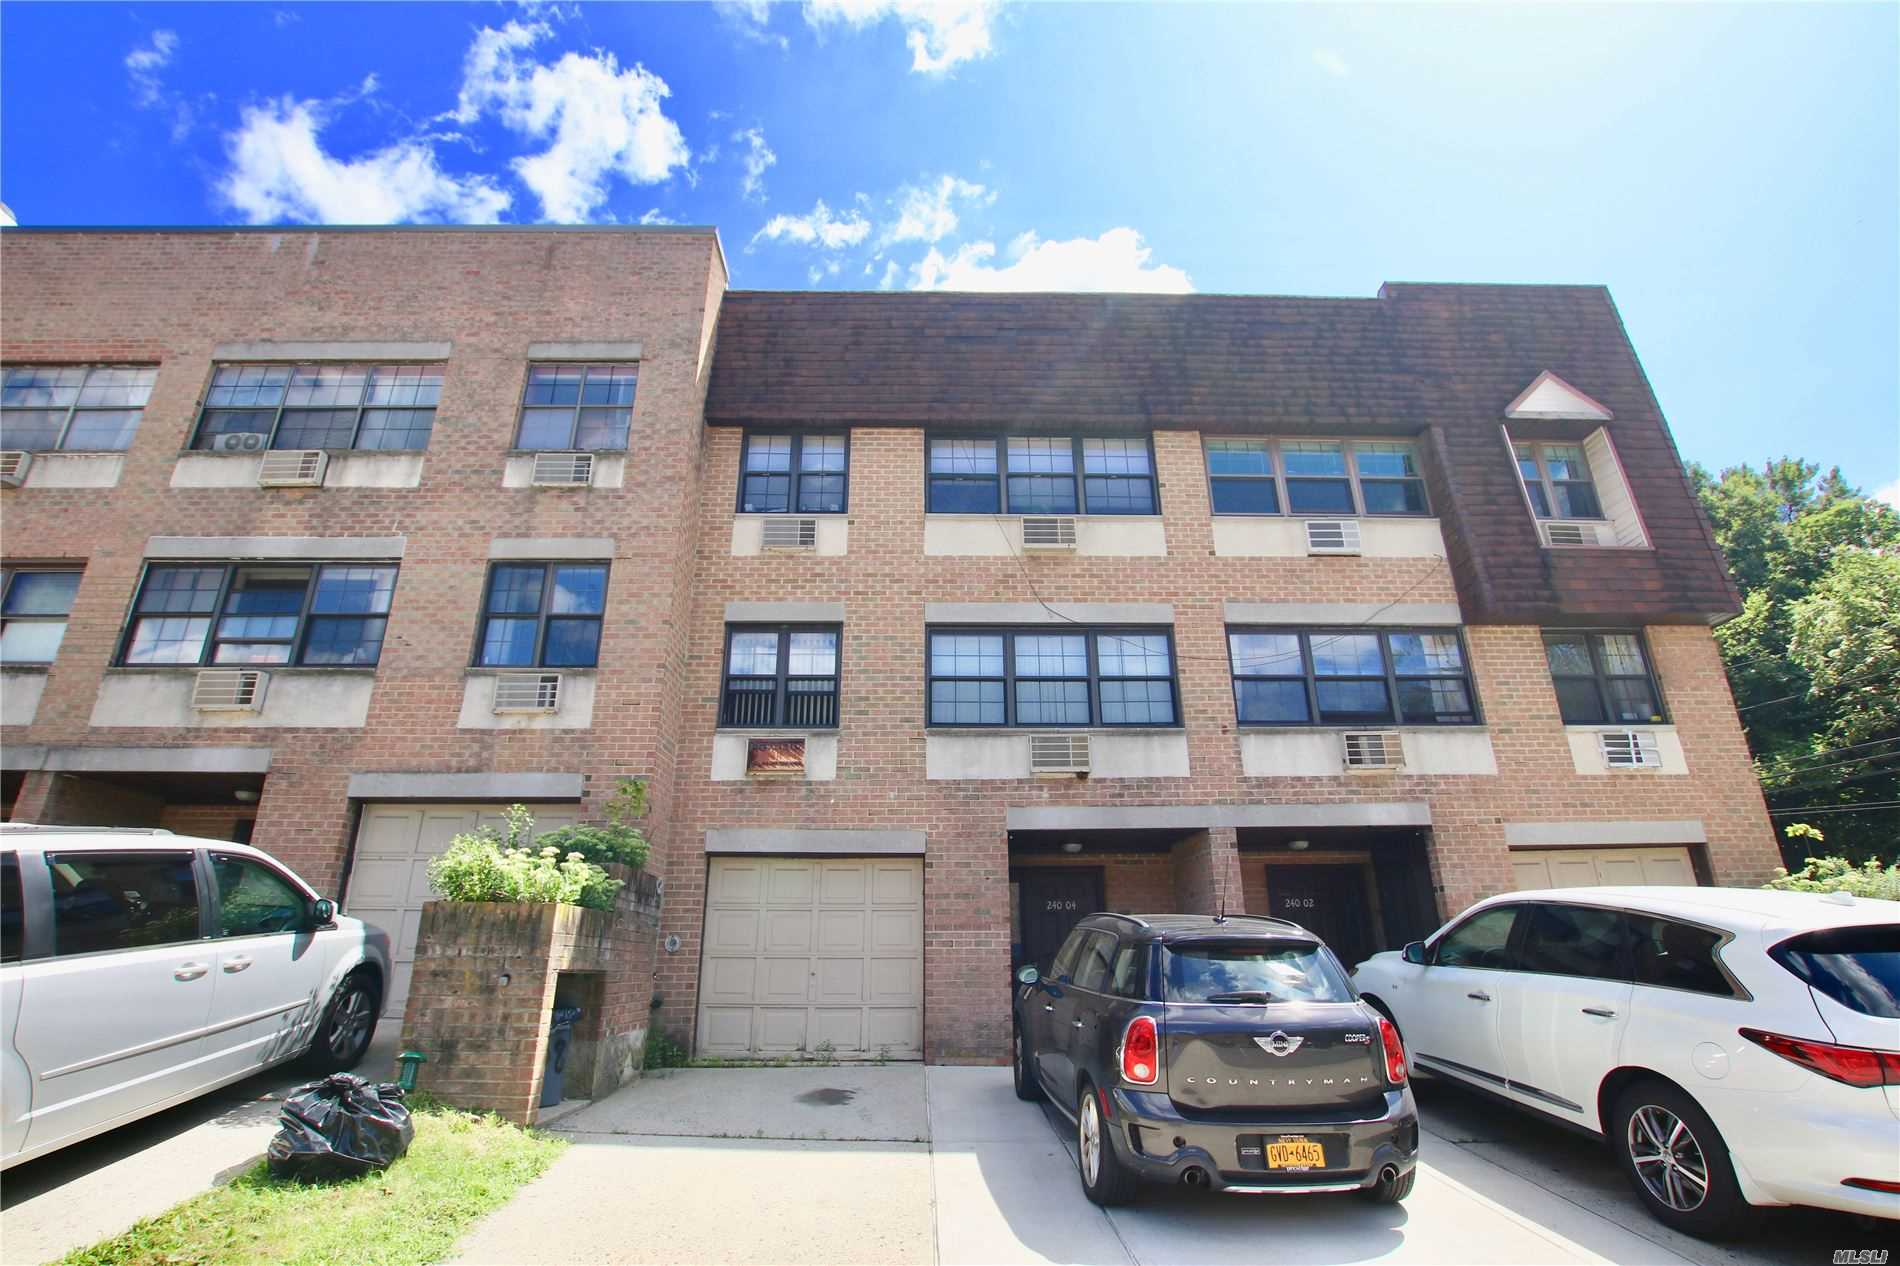 1 Bedroom Duplex in desirable and peaceful Douglaston. Move-in ready. Freshly painted. New Bathroom W/D hook available. SD 26, alley pond park, Douglaston golf course, fairways, parking is available for a fee. Public transportation and highway nearby. Convenient to St John's U and Queens College.